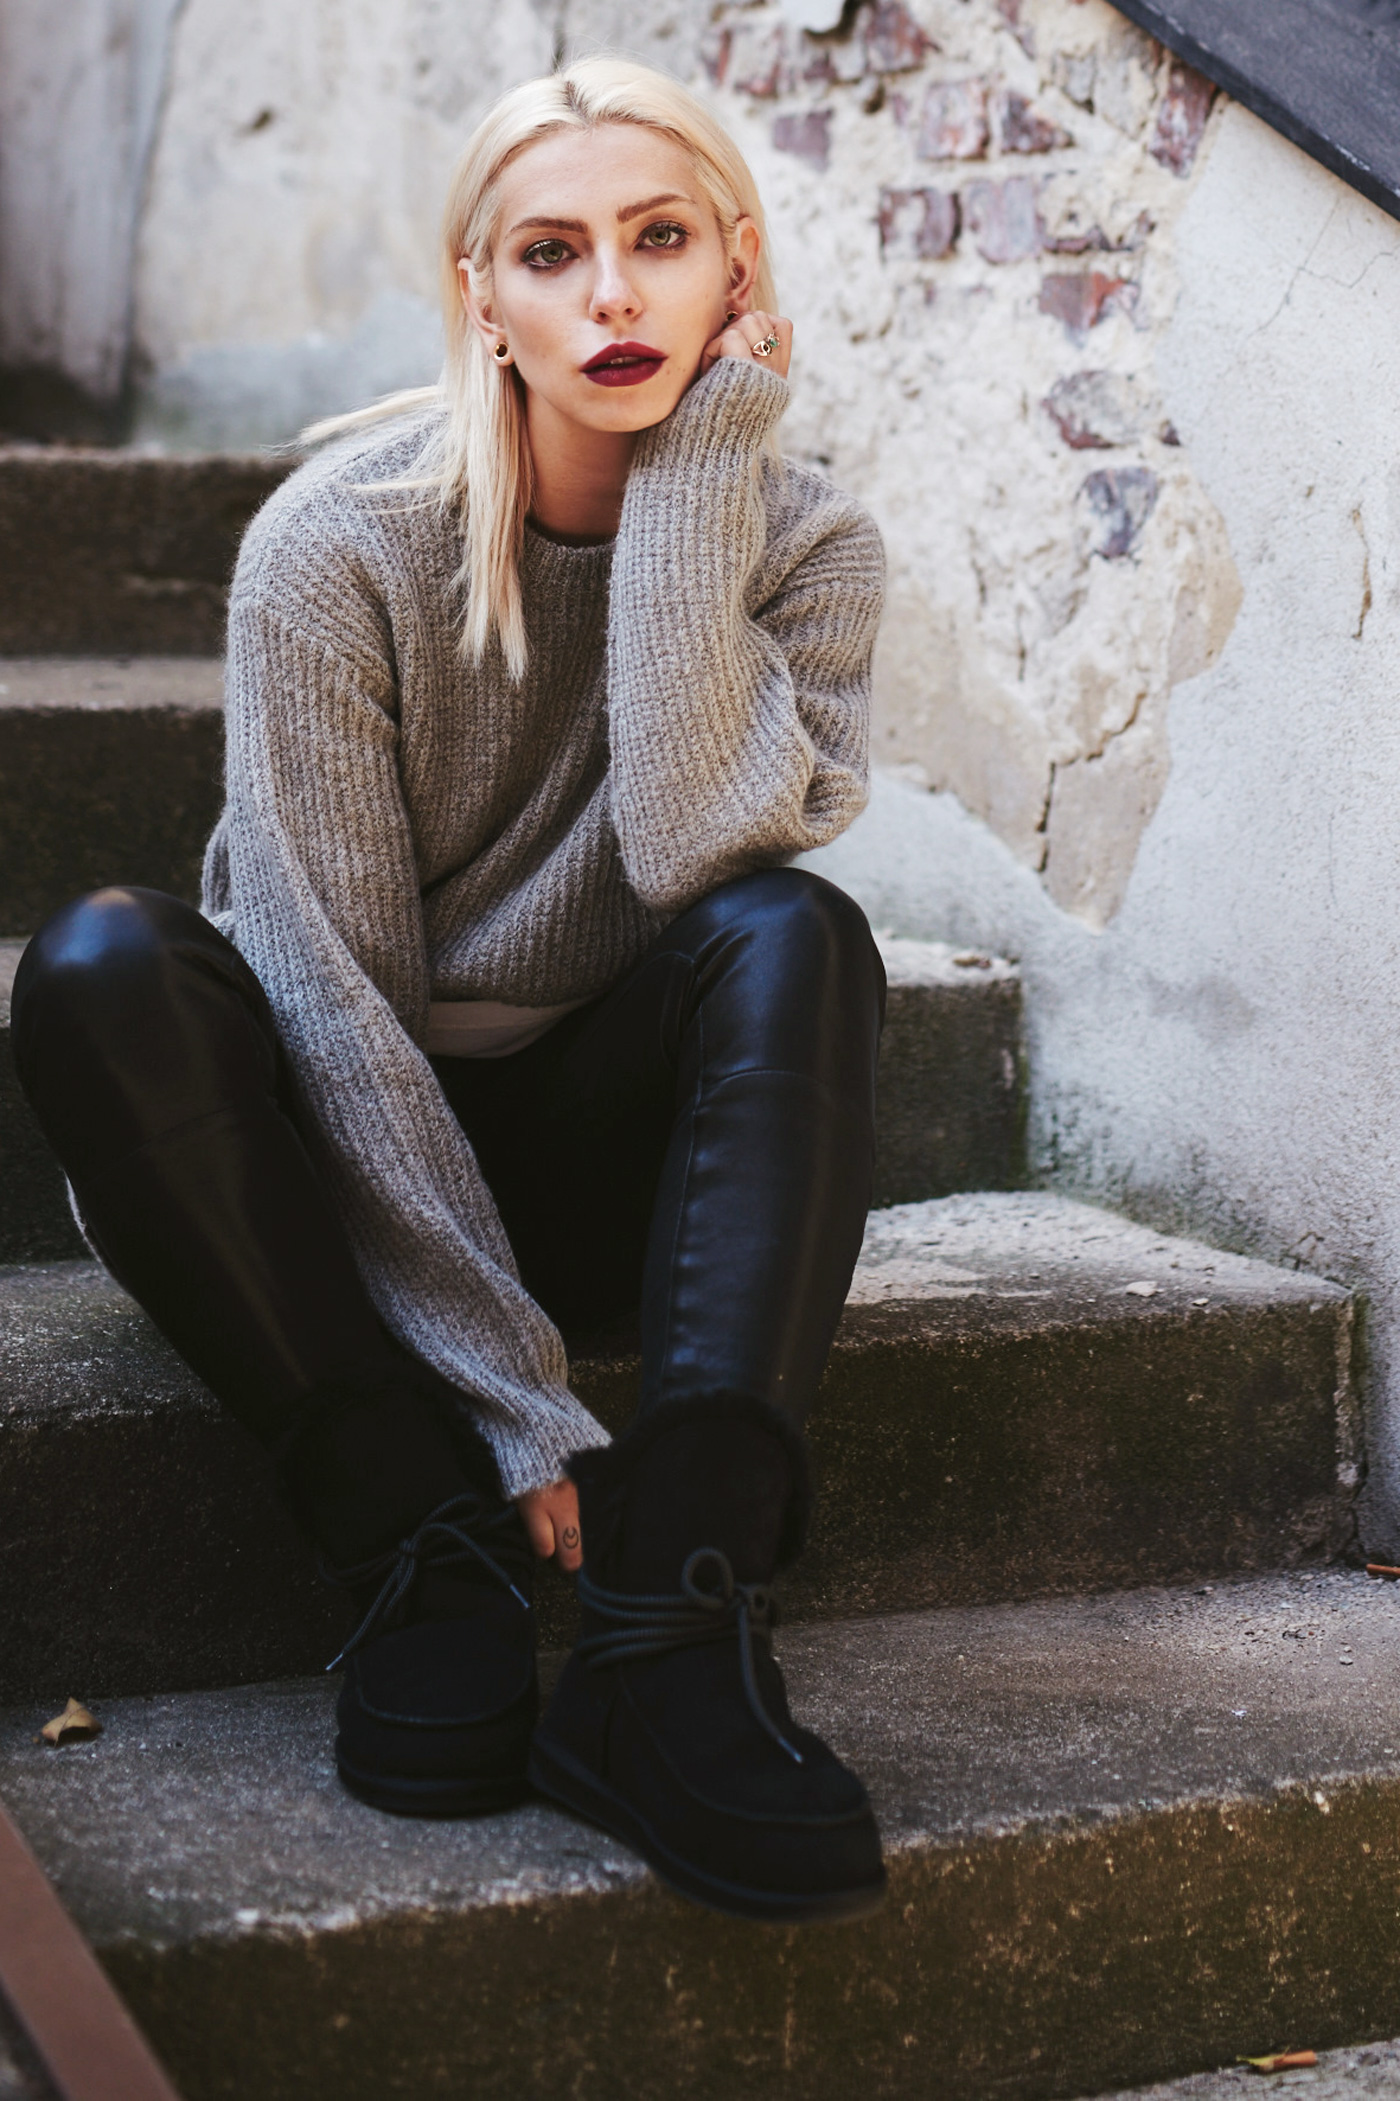 View more details on my blog   via Masha Sedgwick   Fashion Blog from Berlin   Outfit: comfy winter style   lambskin boots